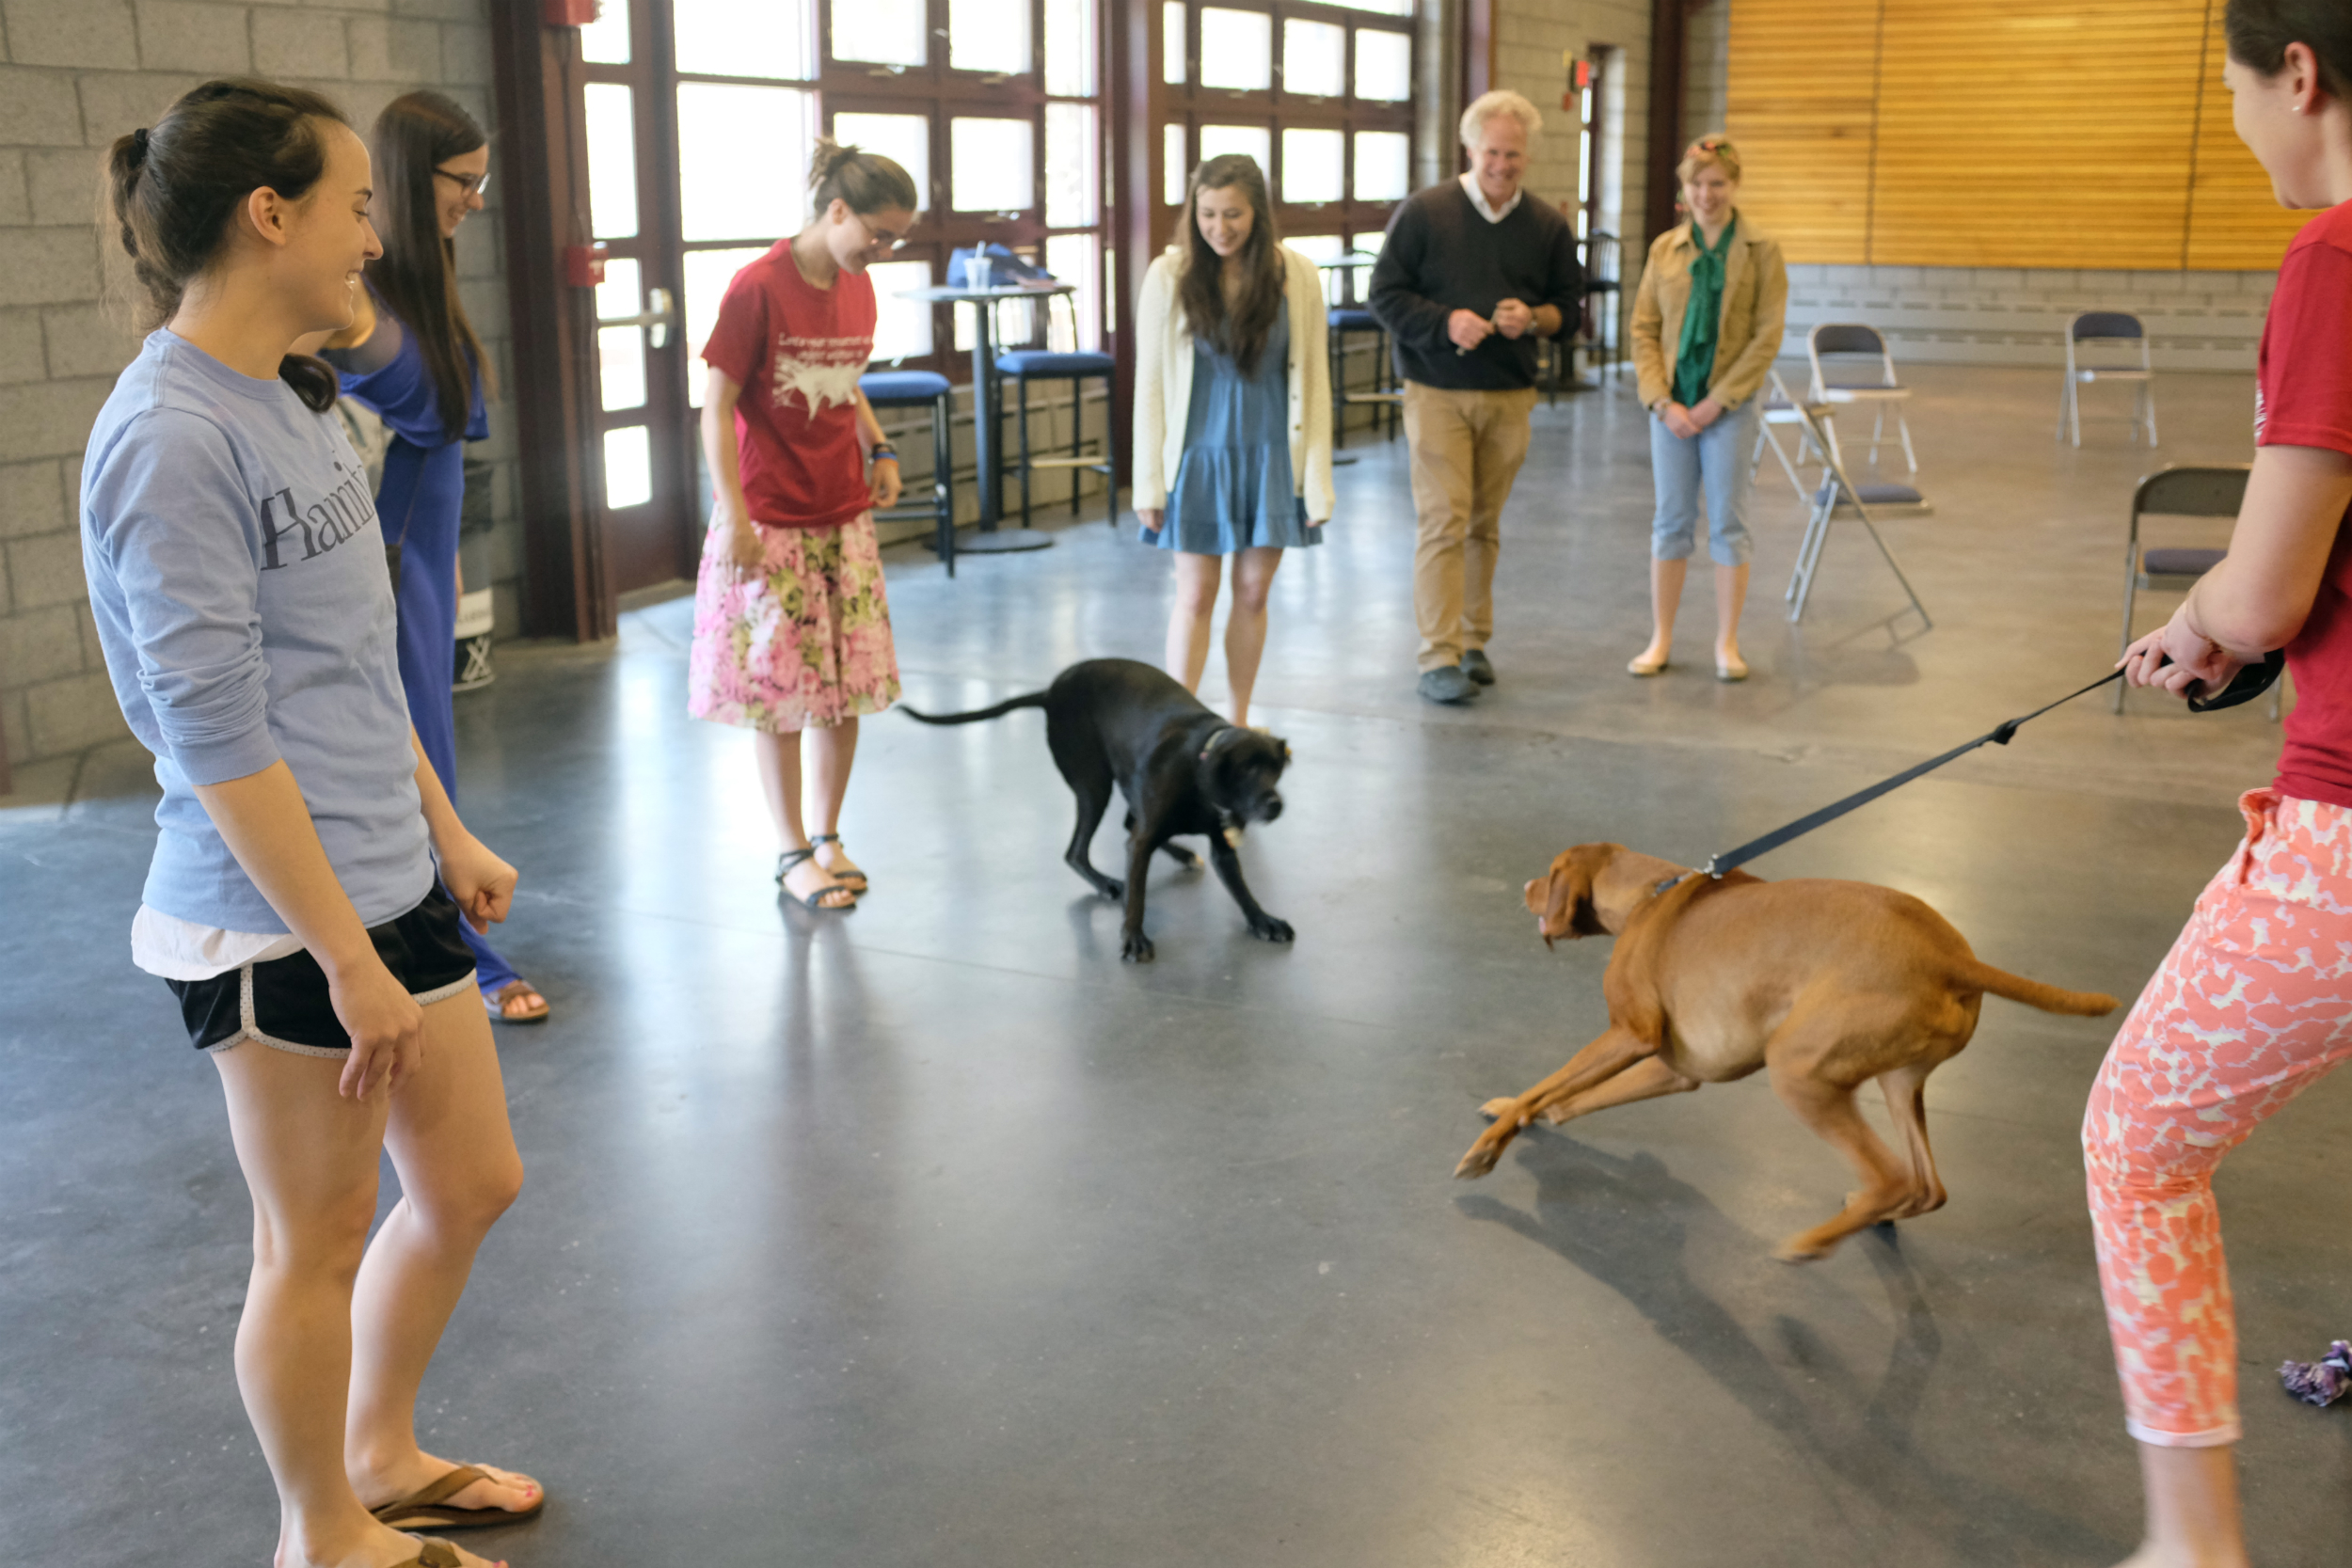 Students and staff enjoyed the Paws to Relax event in the Fillius Events Barn. The dogs... not so much!